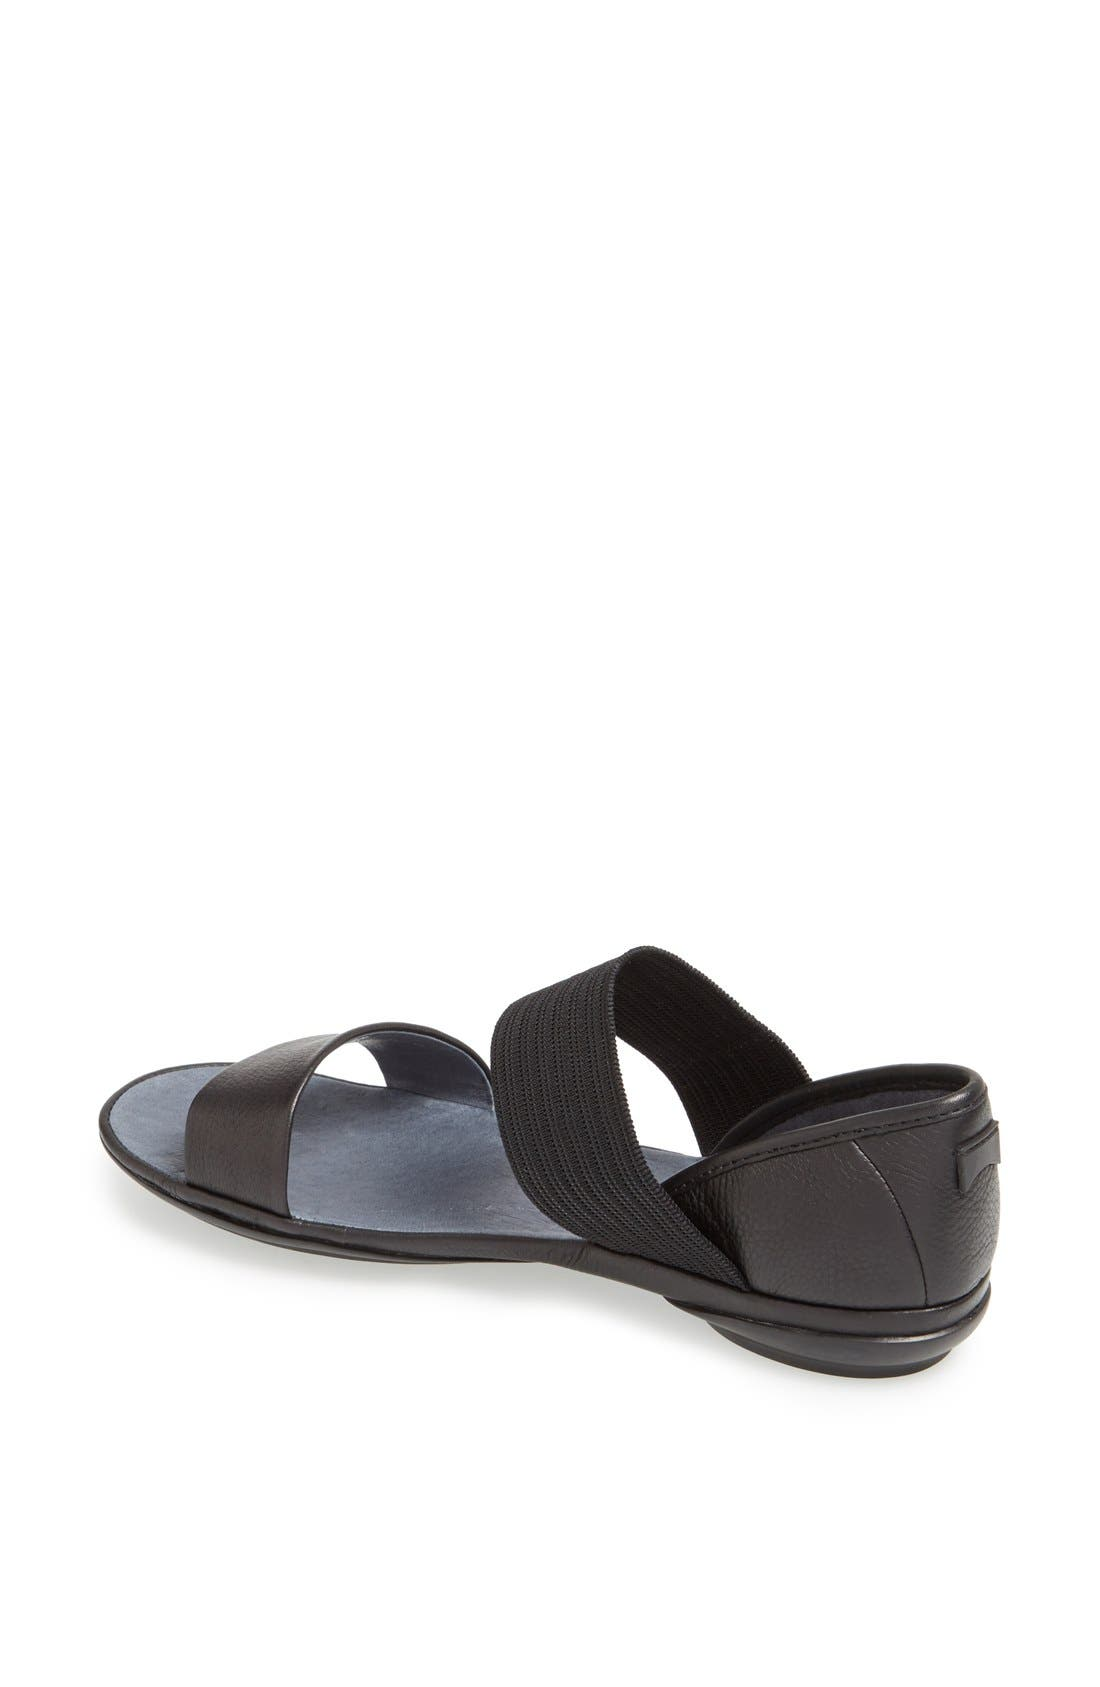 Alternate Image 2  - Camper 'Right Nina' Sandal